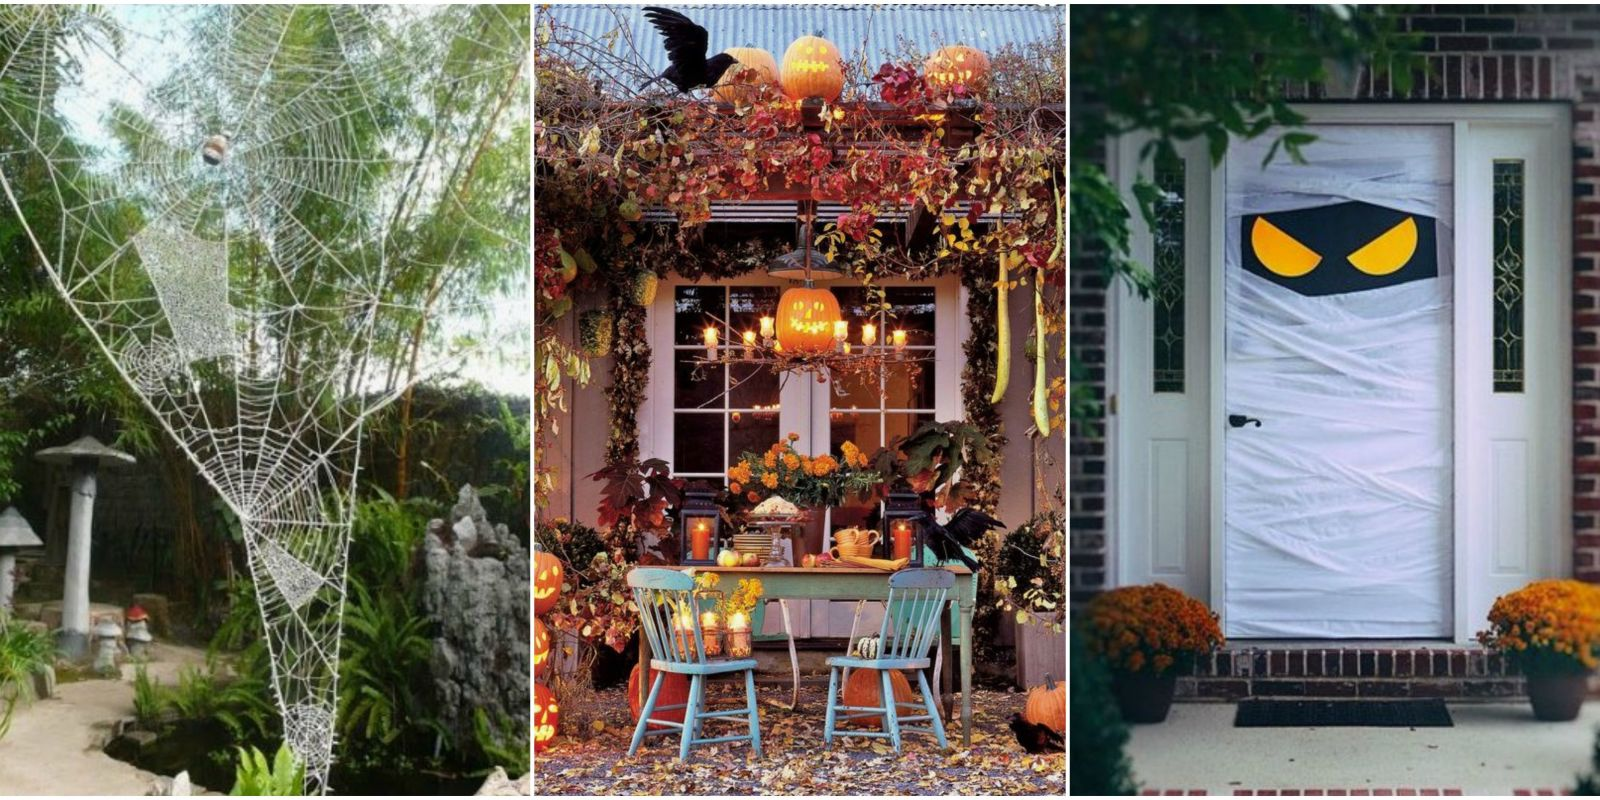 Halloween front garden ideas - 13 Inspirational Garden Ideas For Halloween Halloween Decoration Ideas